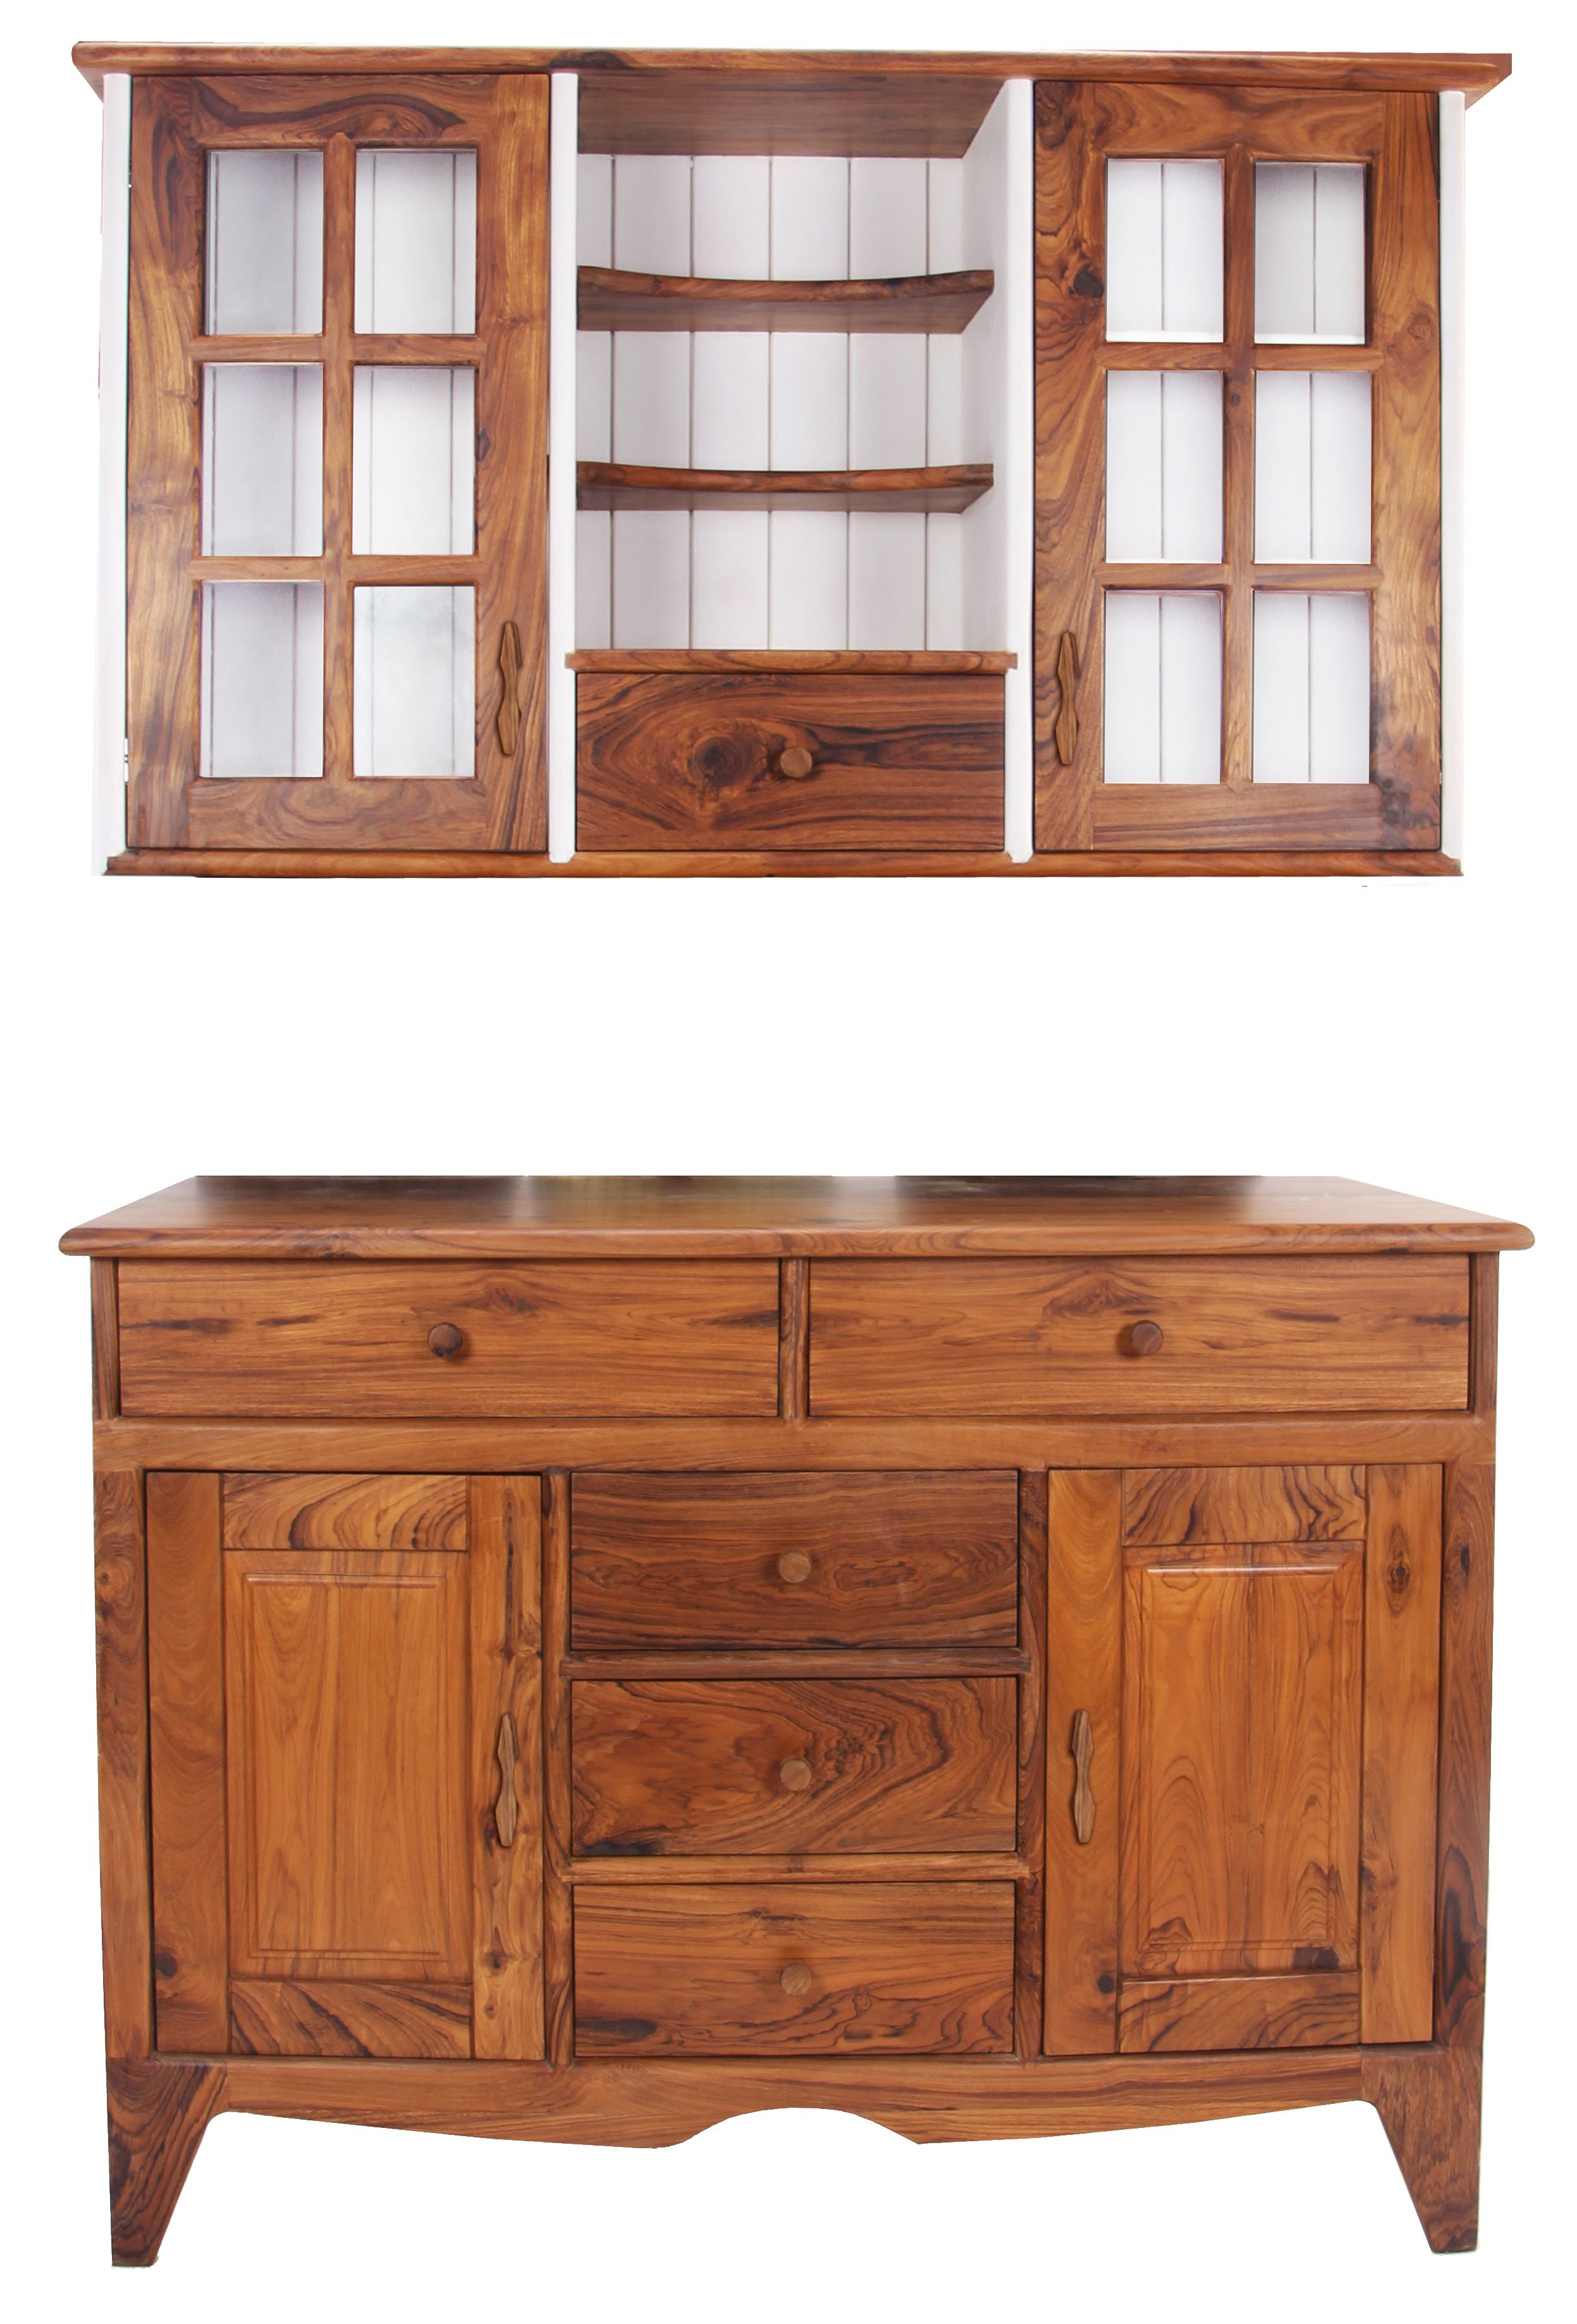 Two Part Cutlery Unit Kitchen Cabinet Made With Teakwood Wood Wooden Furniture Sol Solid Wood Furniture Design Wood Furniture Design Furniture Design